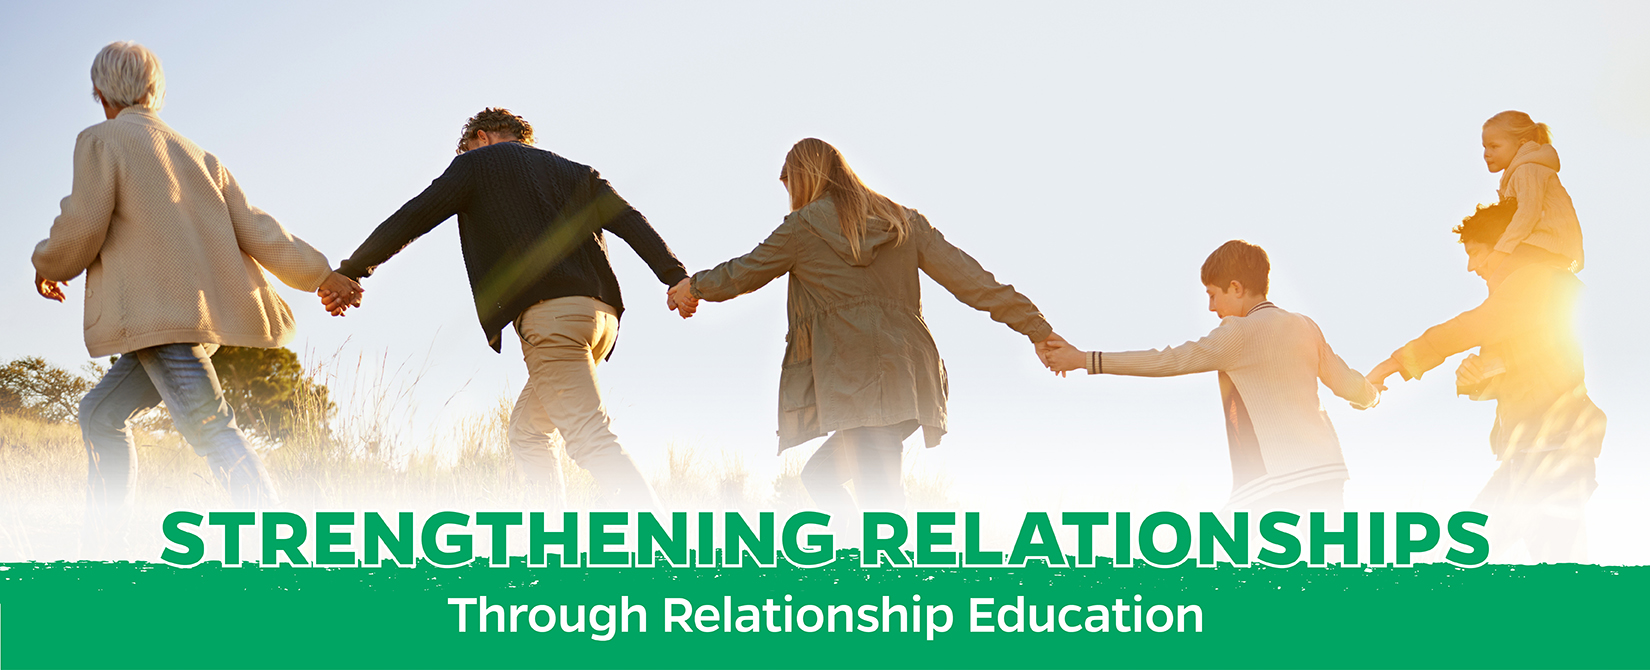 Strengthening Relationships Through Relationship Education